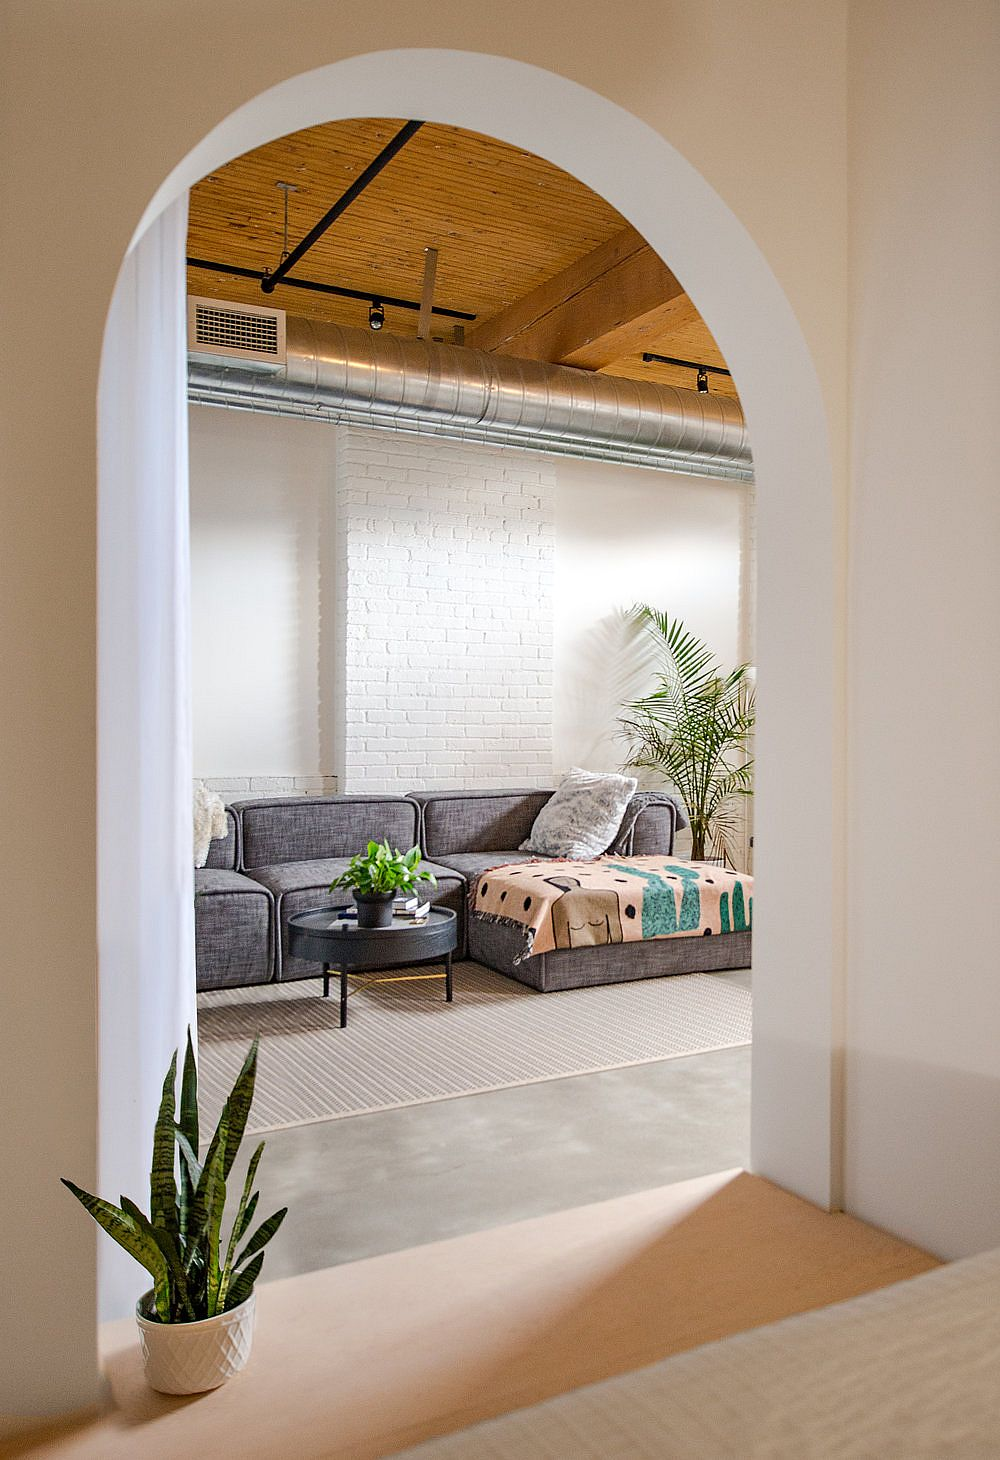 Archways add beauty and elegance to the bed box design